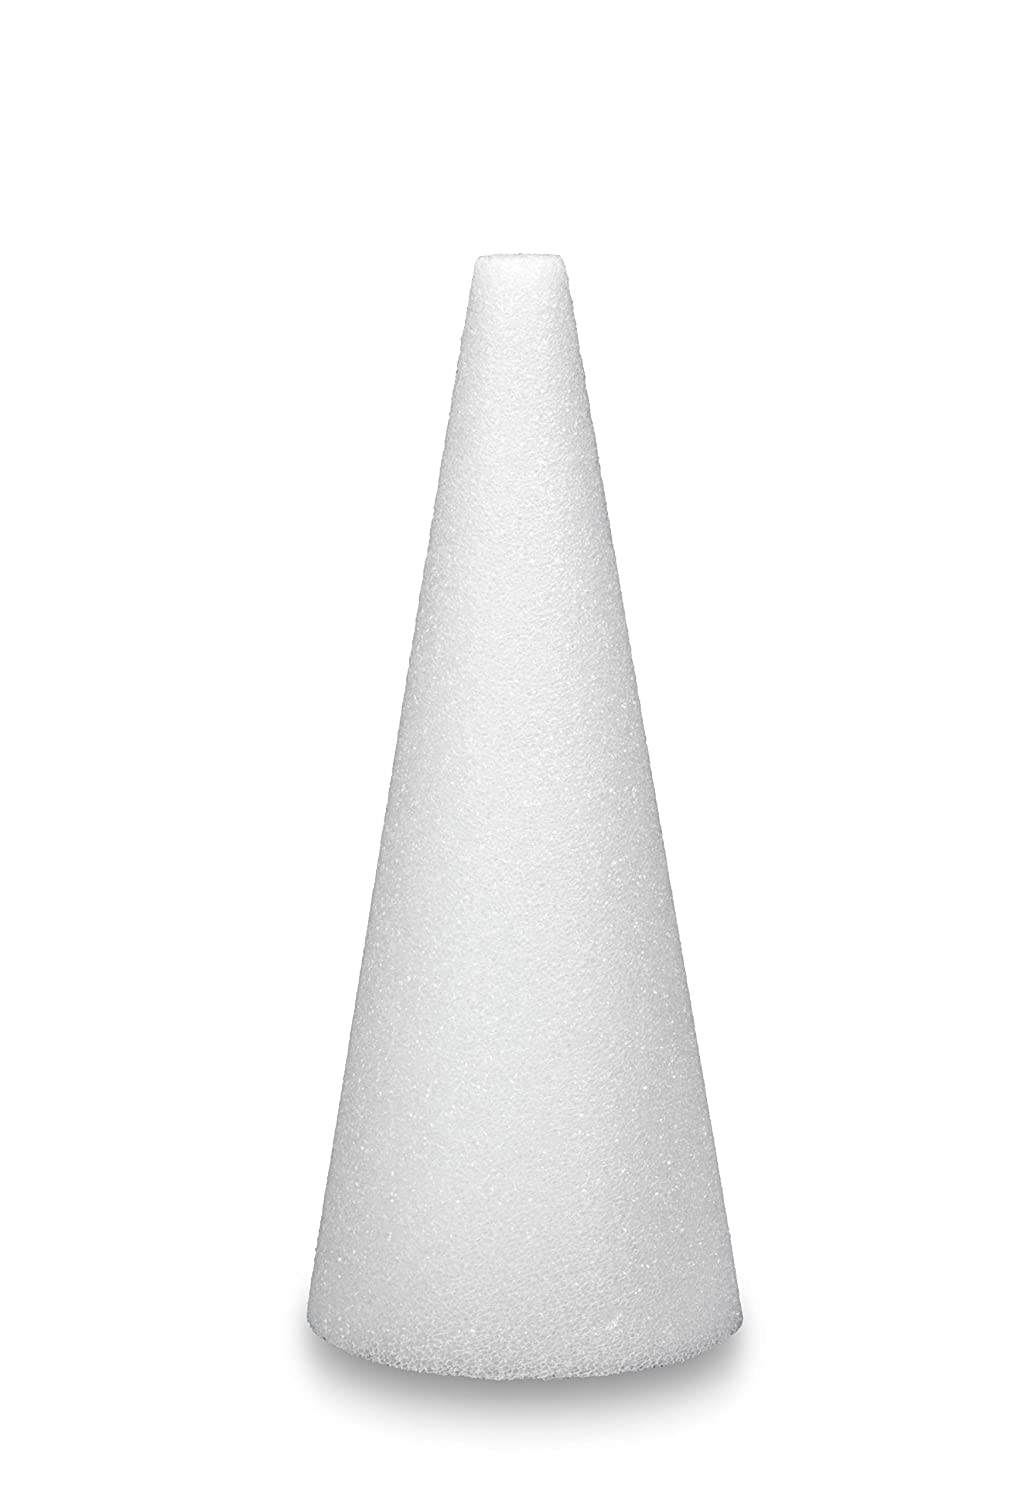 FloraCraft C63WS/24/2 Packaged Styrofoam Cones, 6-Inch-by3-Inch Cone, White, 2 Per Pack